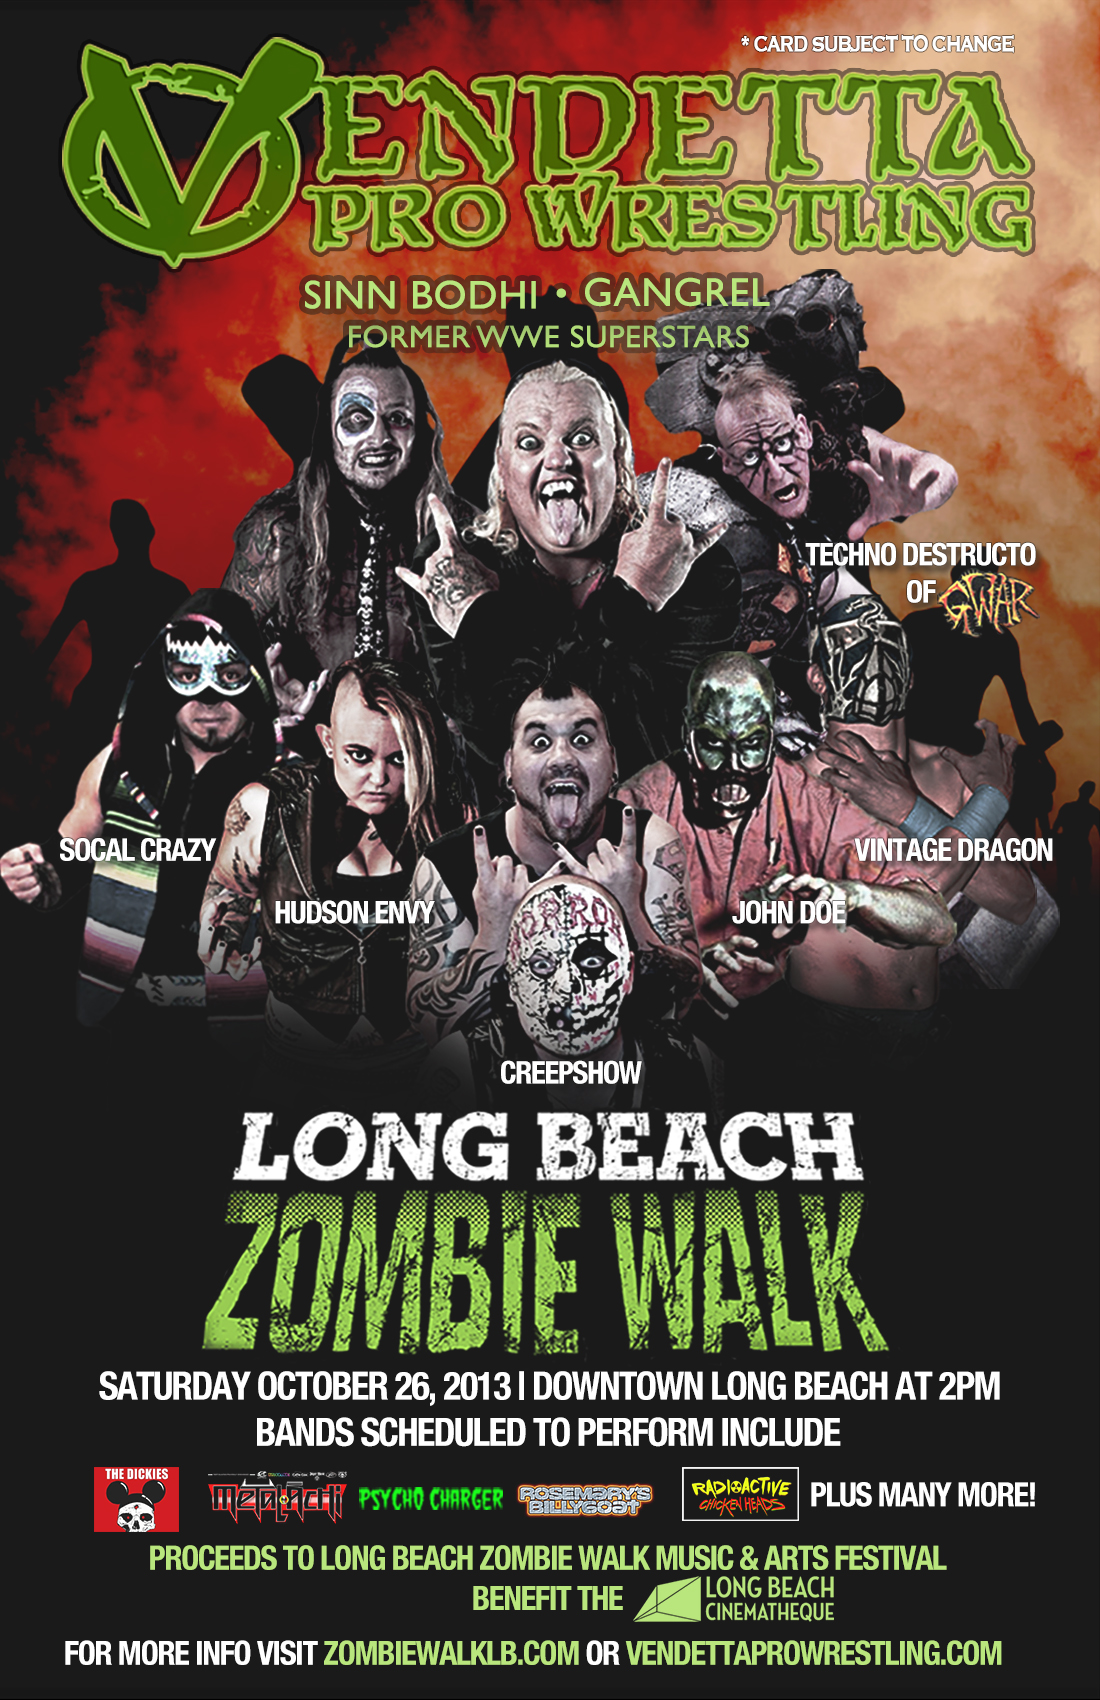 Terror Rising 2013 at the Long Beach Zombie Walk event flyer